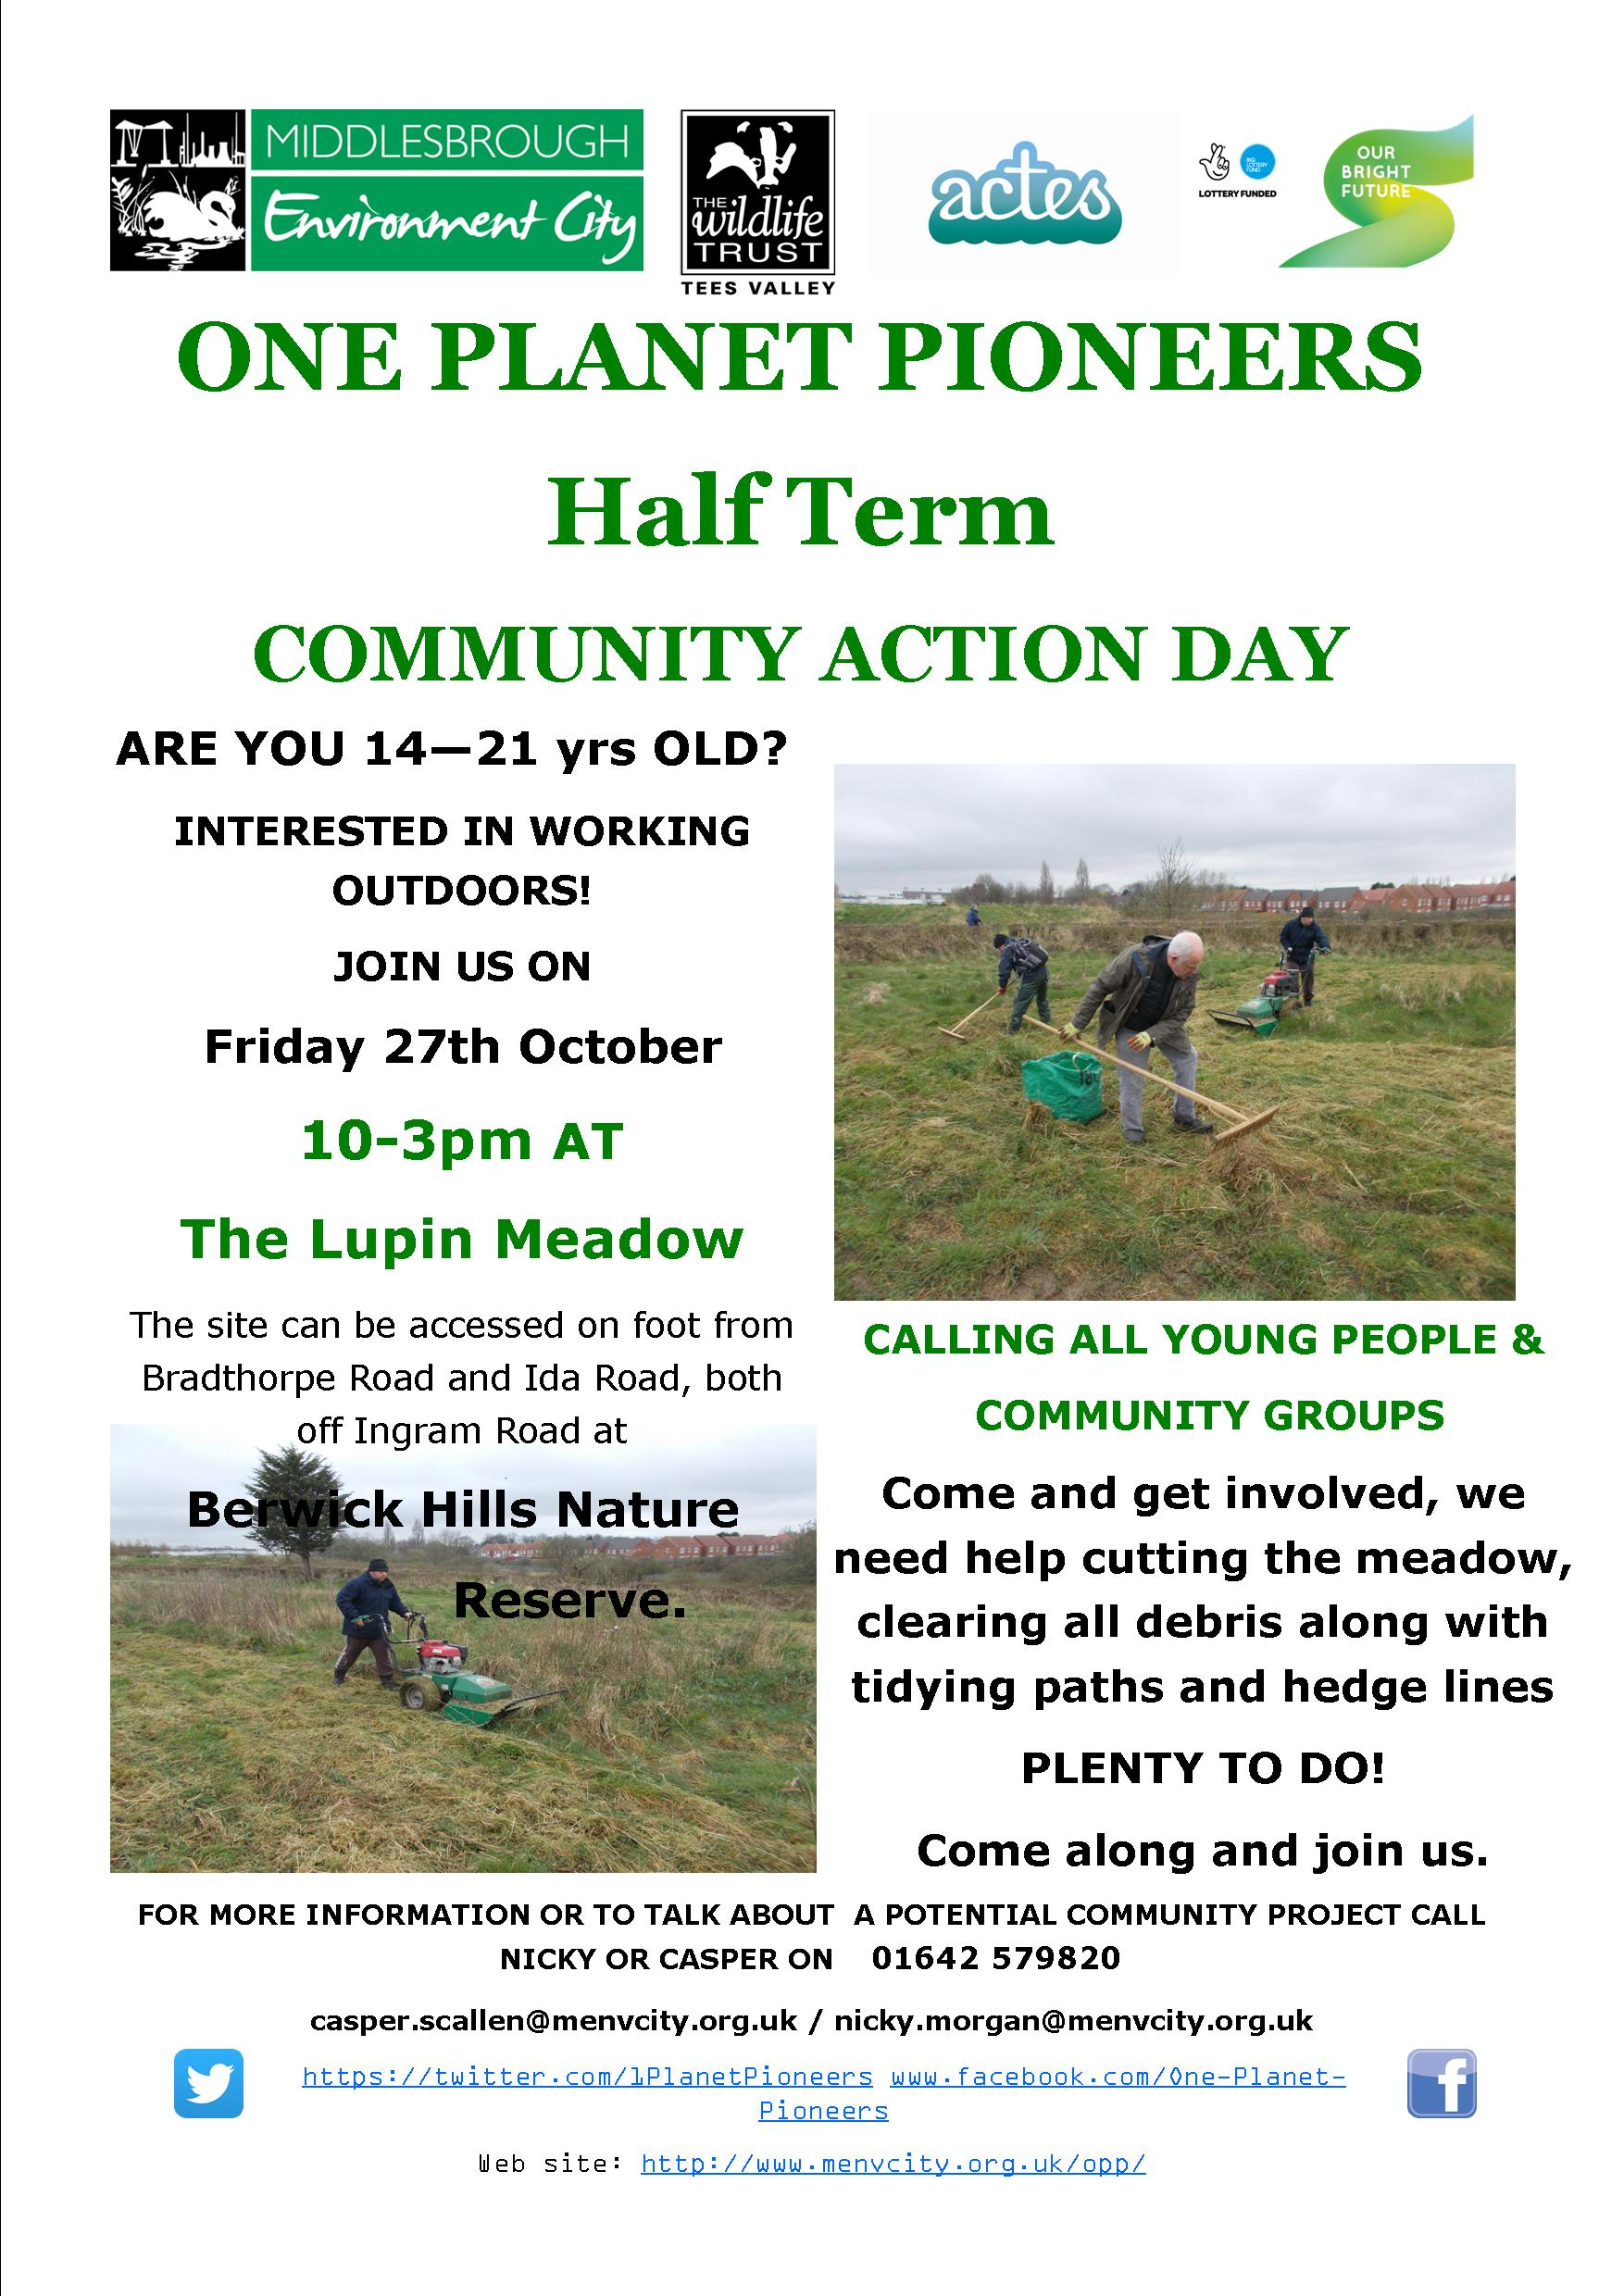 COMMUNITY ACTION DAY MAKEOVER FOR LUPIN MEADOW